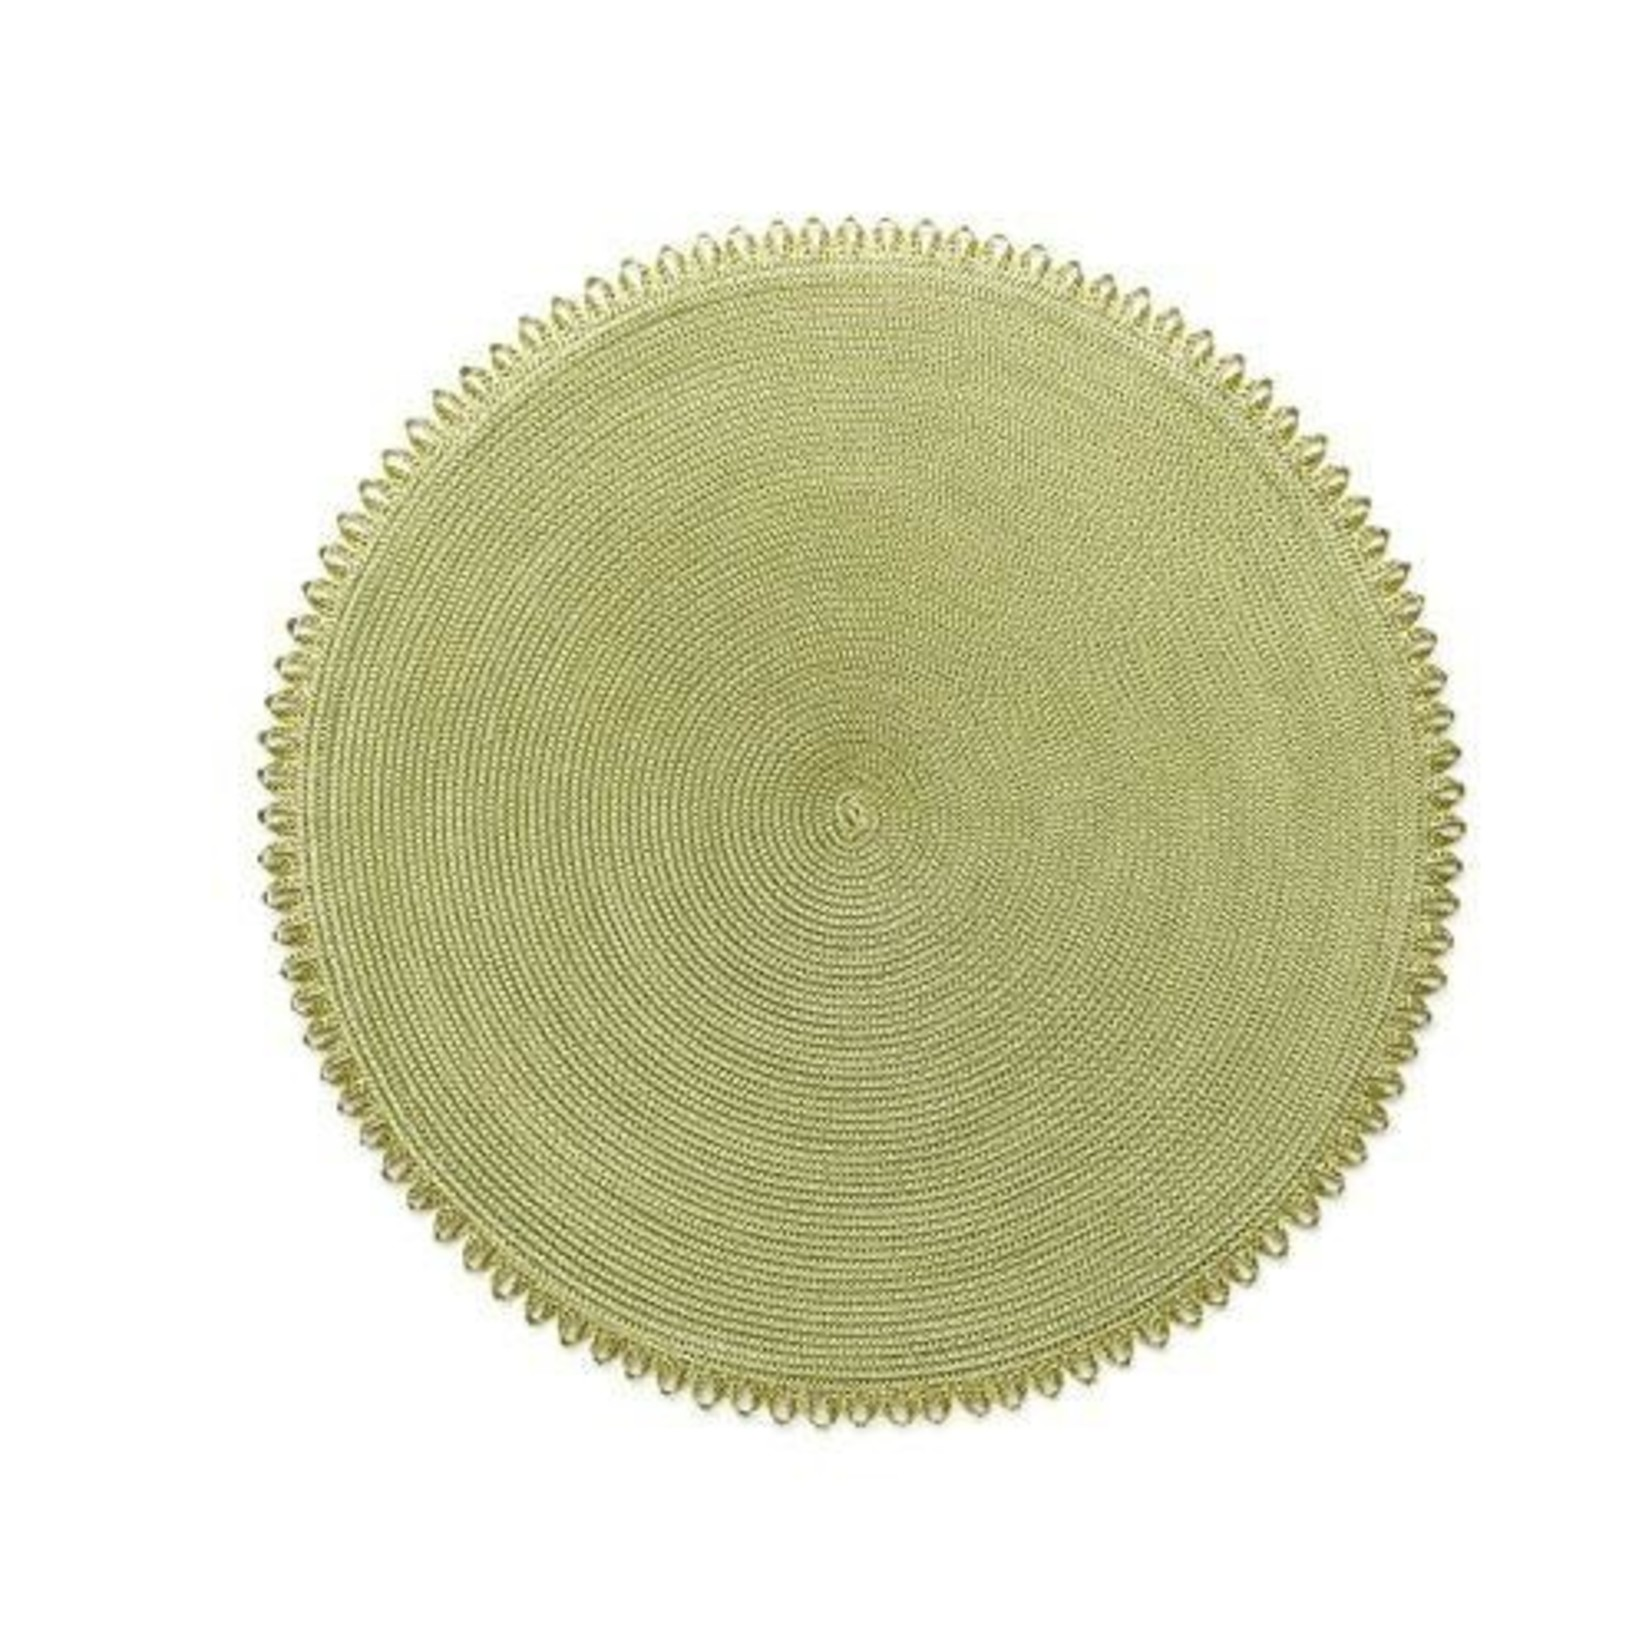 Deborah Rhodes Braided Placemat in Round with Looped Edge (Set of 6)